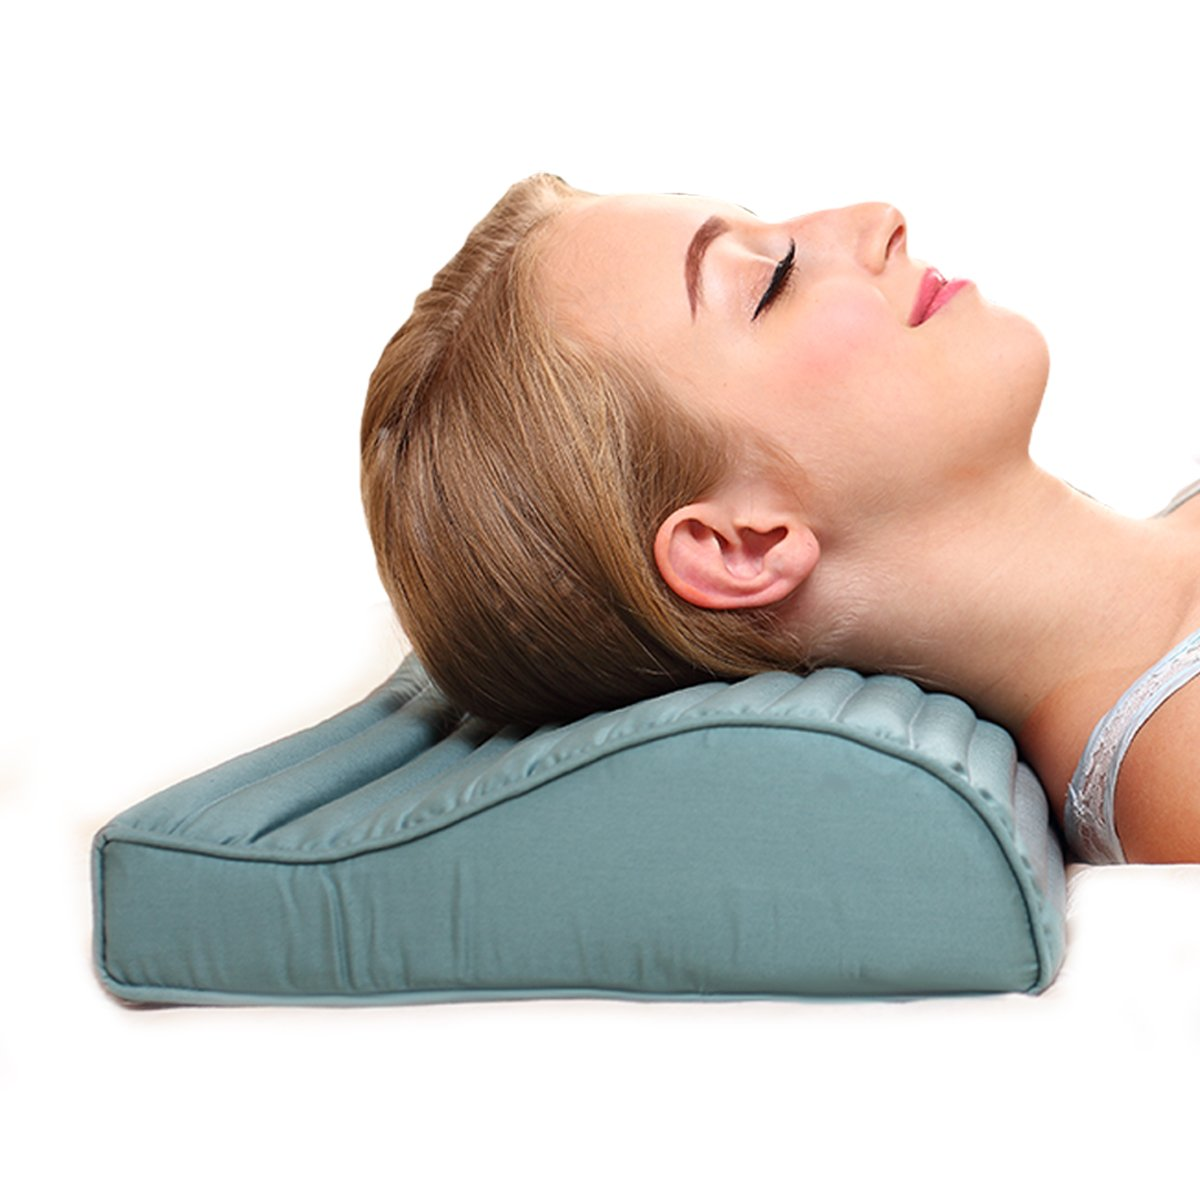 Chiropractic Cooling Neck Pillow- GreenMoon Orthopedic Cervical Pillow for Neck Pain,Pinched Nerve Neck,Stiff Neck,Firm Contour Pillow including Jade Layer,1 Herbal Pack,2 Egyptian Cotton Pillow Cases